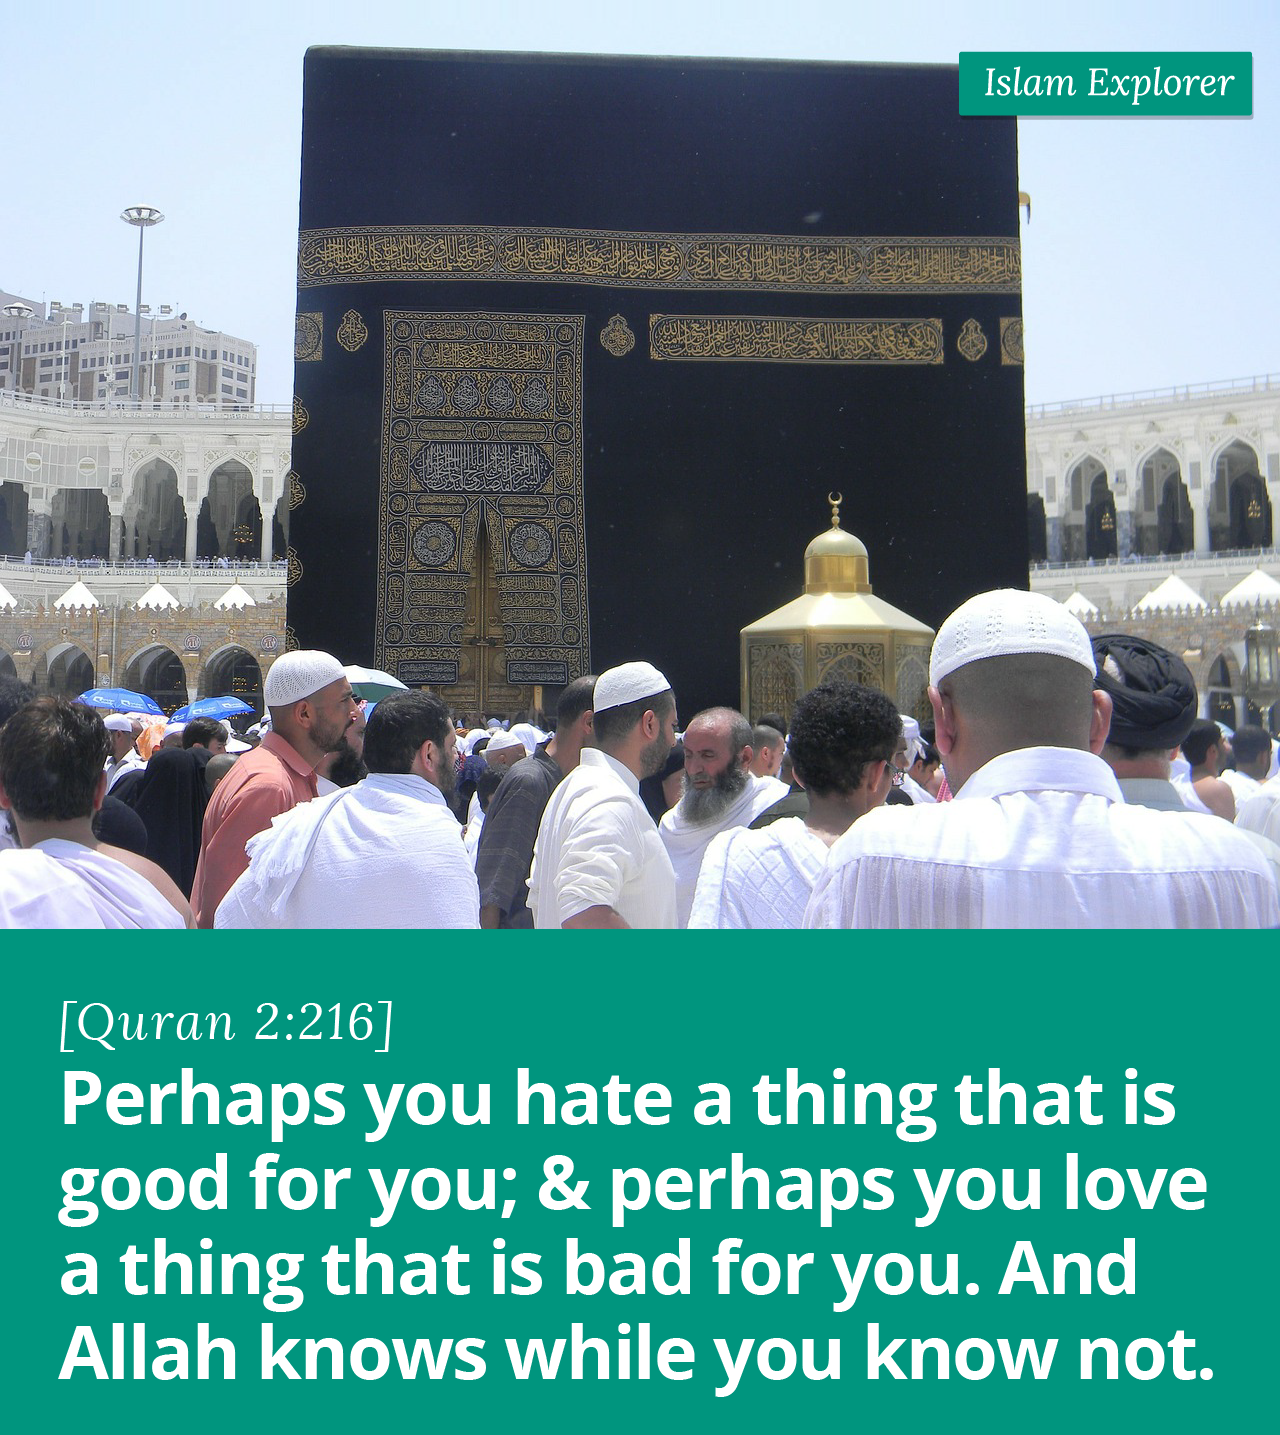 Perhaps you hate a thing that is good for you